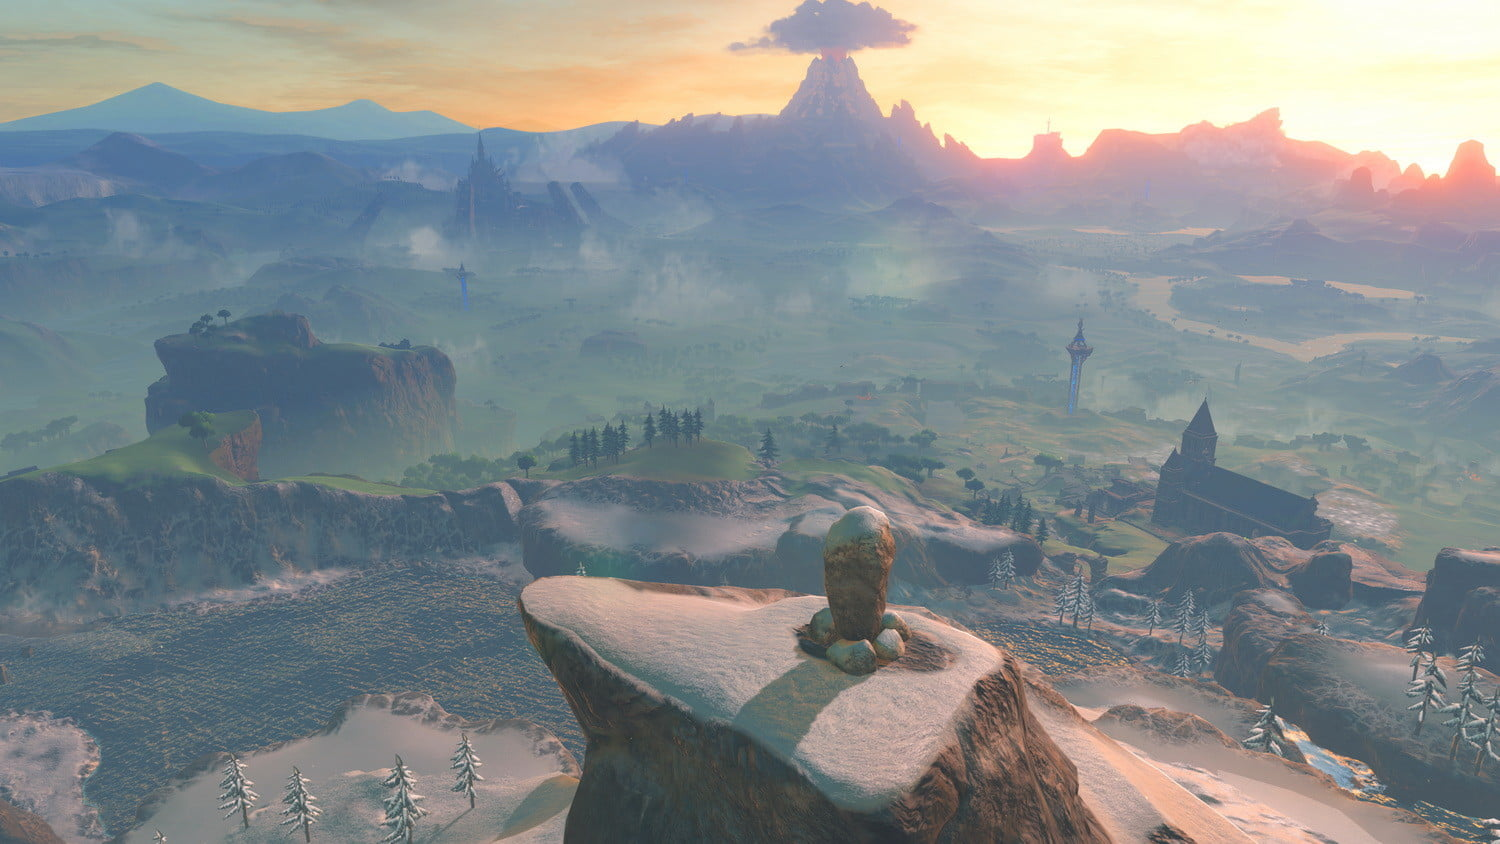 New 'Zelda: Breath of the Wild' footage shows off the new Temple of Time